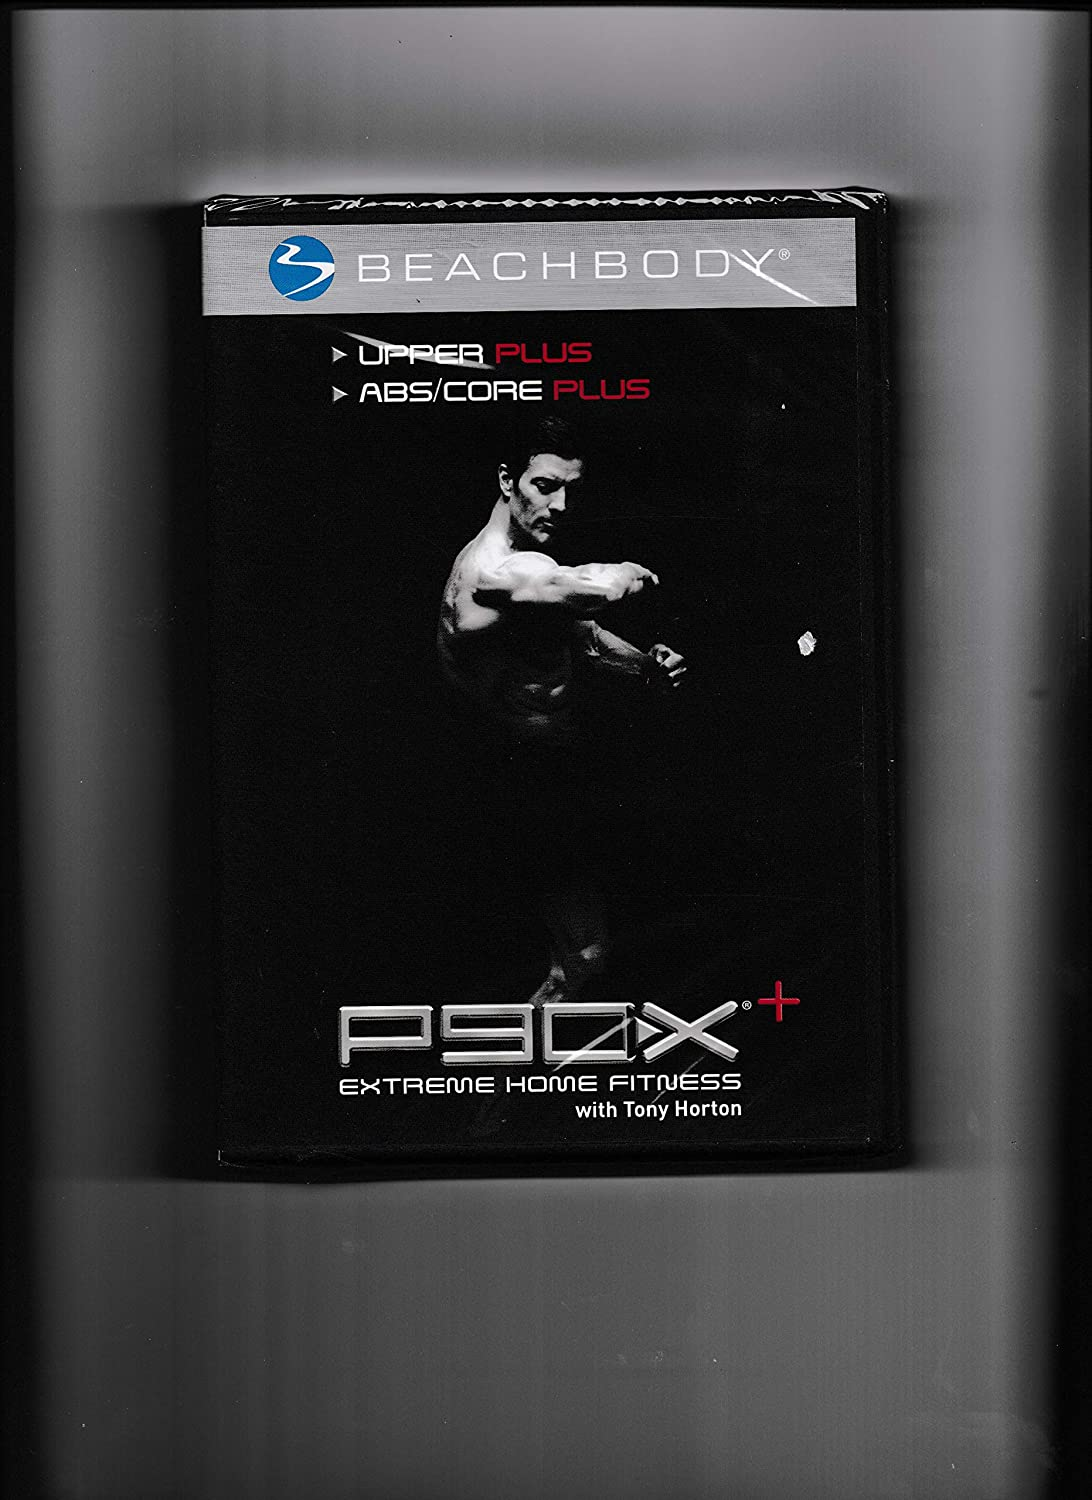 P90X+ Extreme Home Fitness with Tony Horton: Upper Plus and Abs/Core Plus